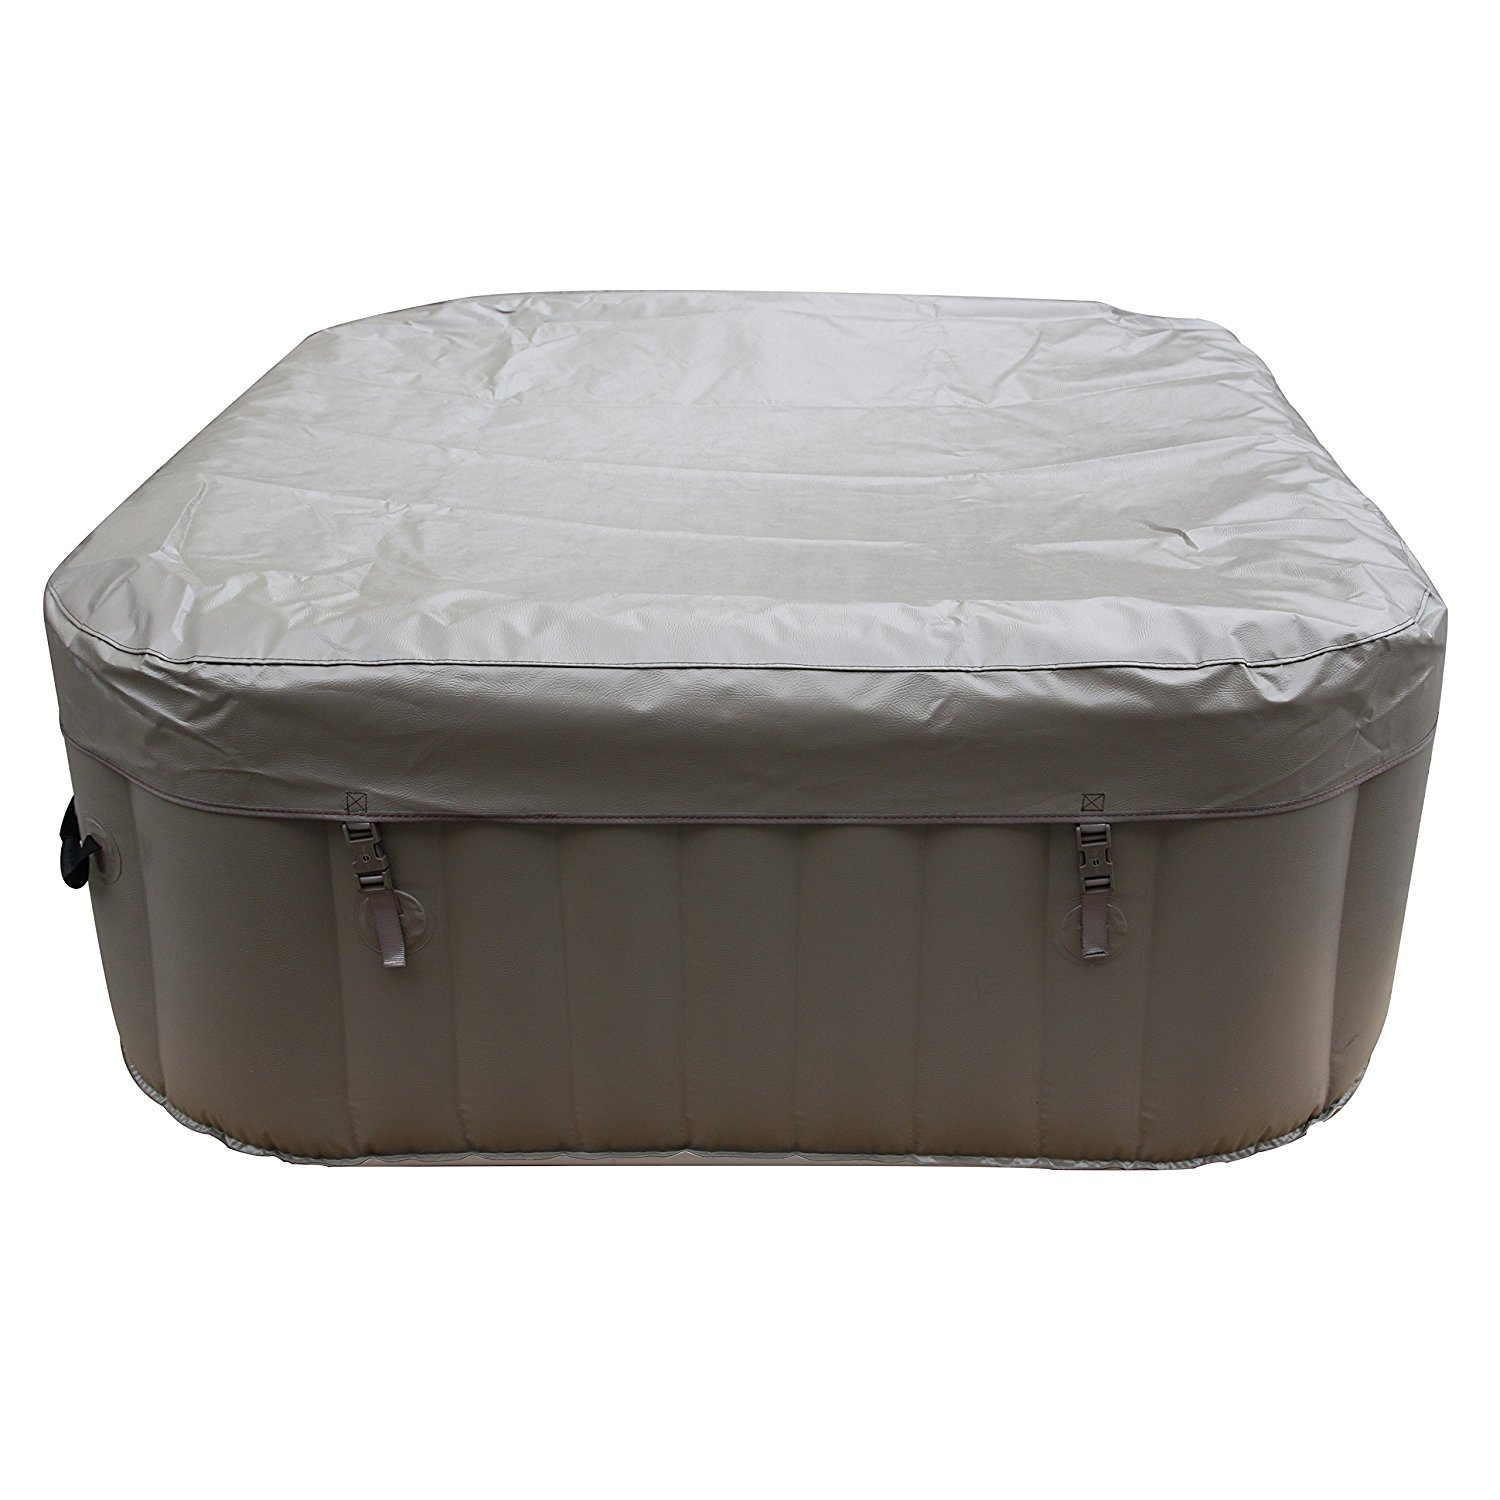 BizX HTISQ4BR Square Inflatable Portable Hot Tub Personal